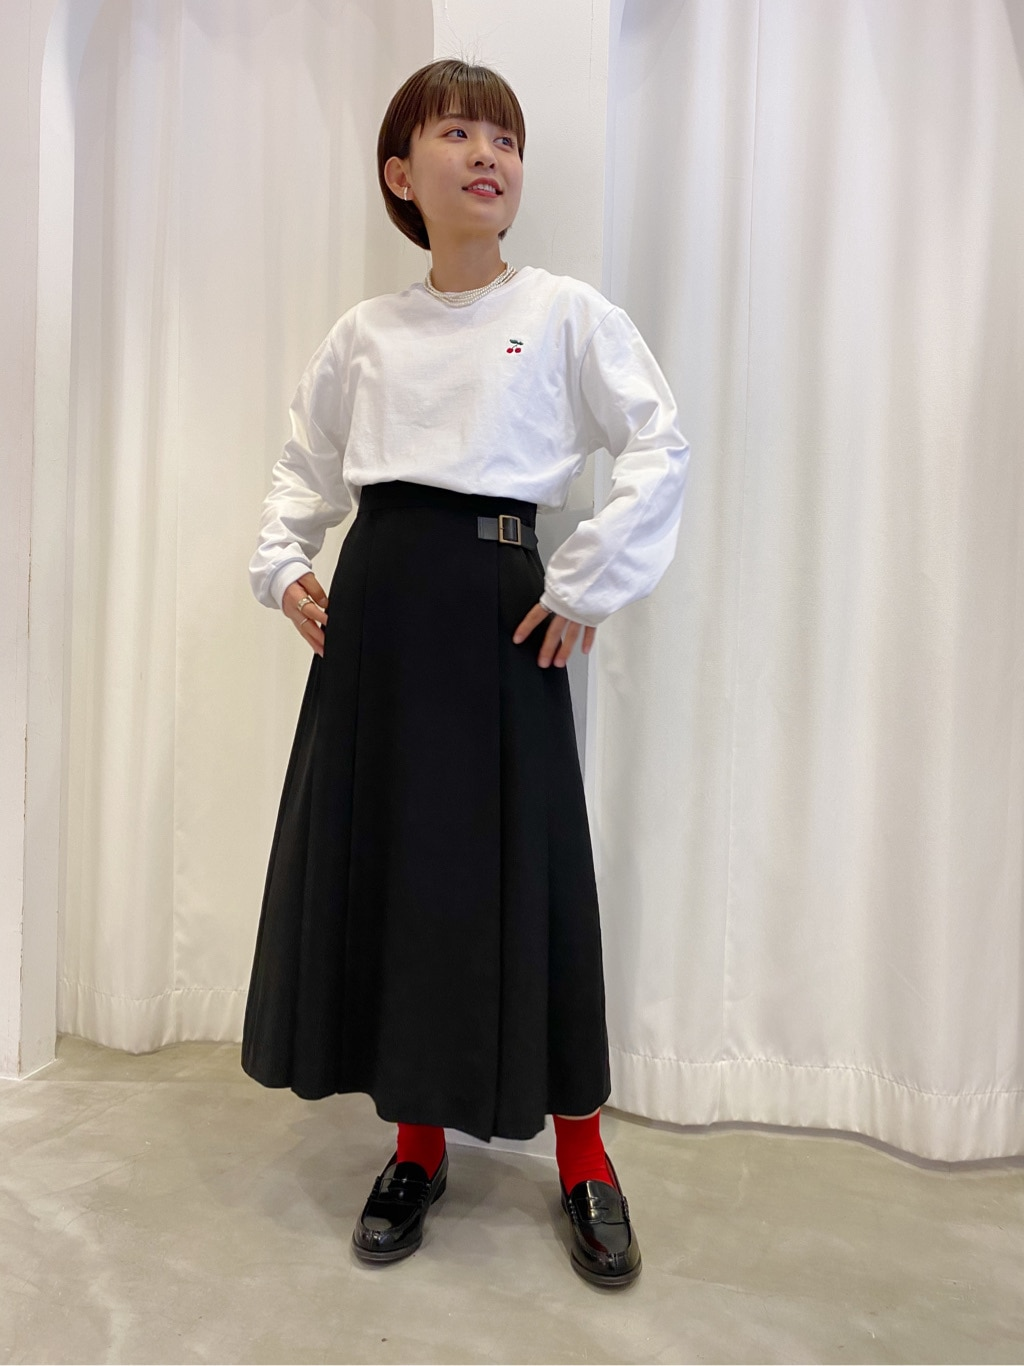 Dot and Stripes CHILD WOMAN ラフォーレ原宿 身長:152cm 2020.04.08